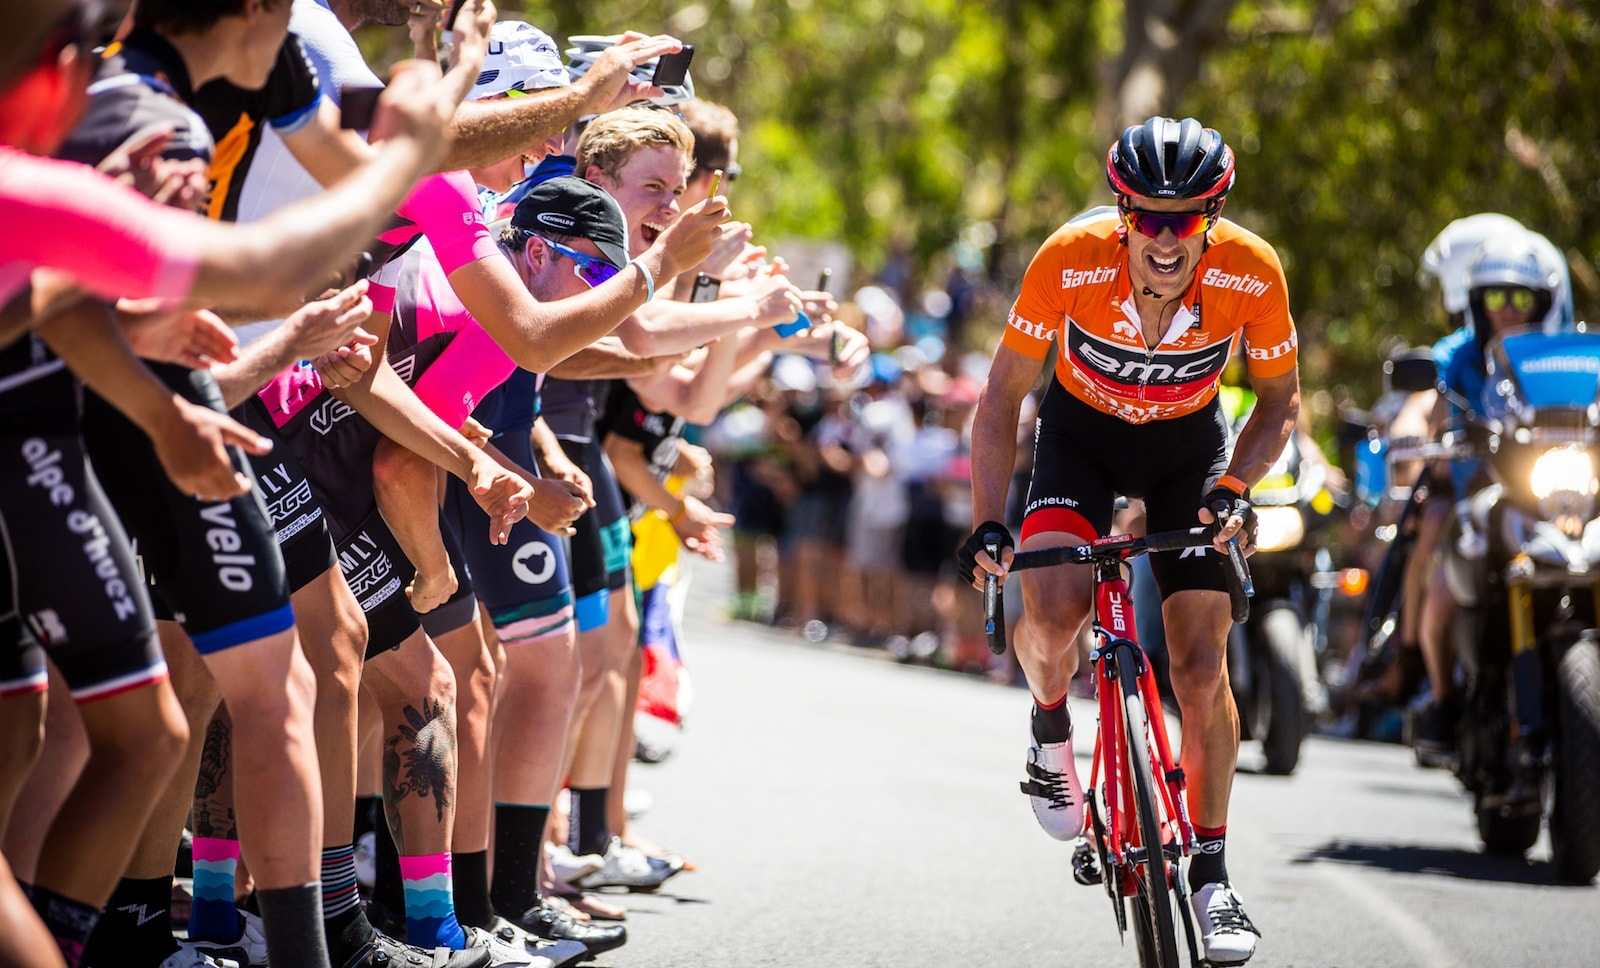 Preview: What to know about the 2018 Santos Tour Down Under